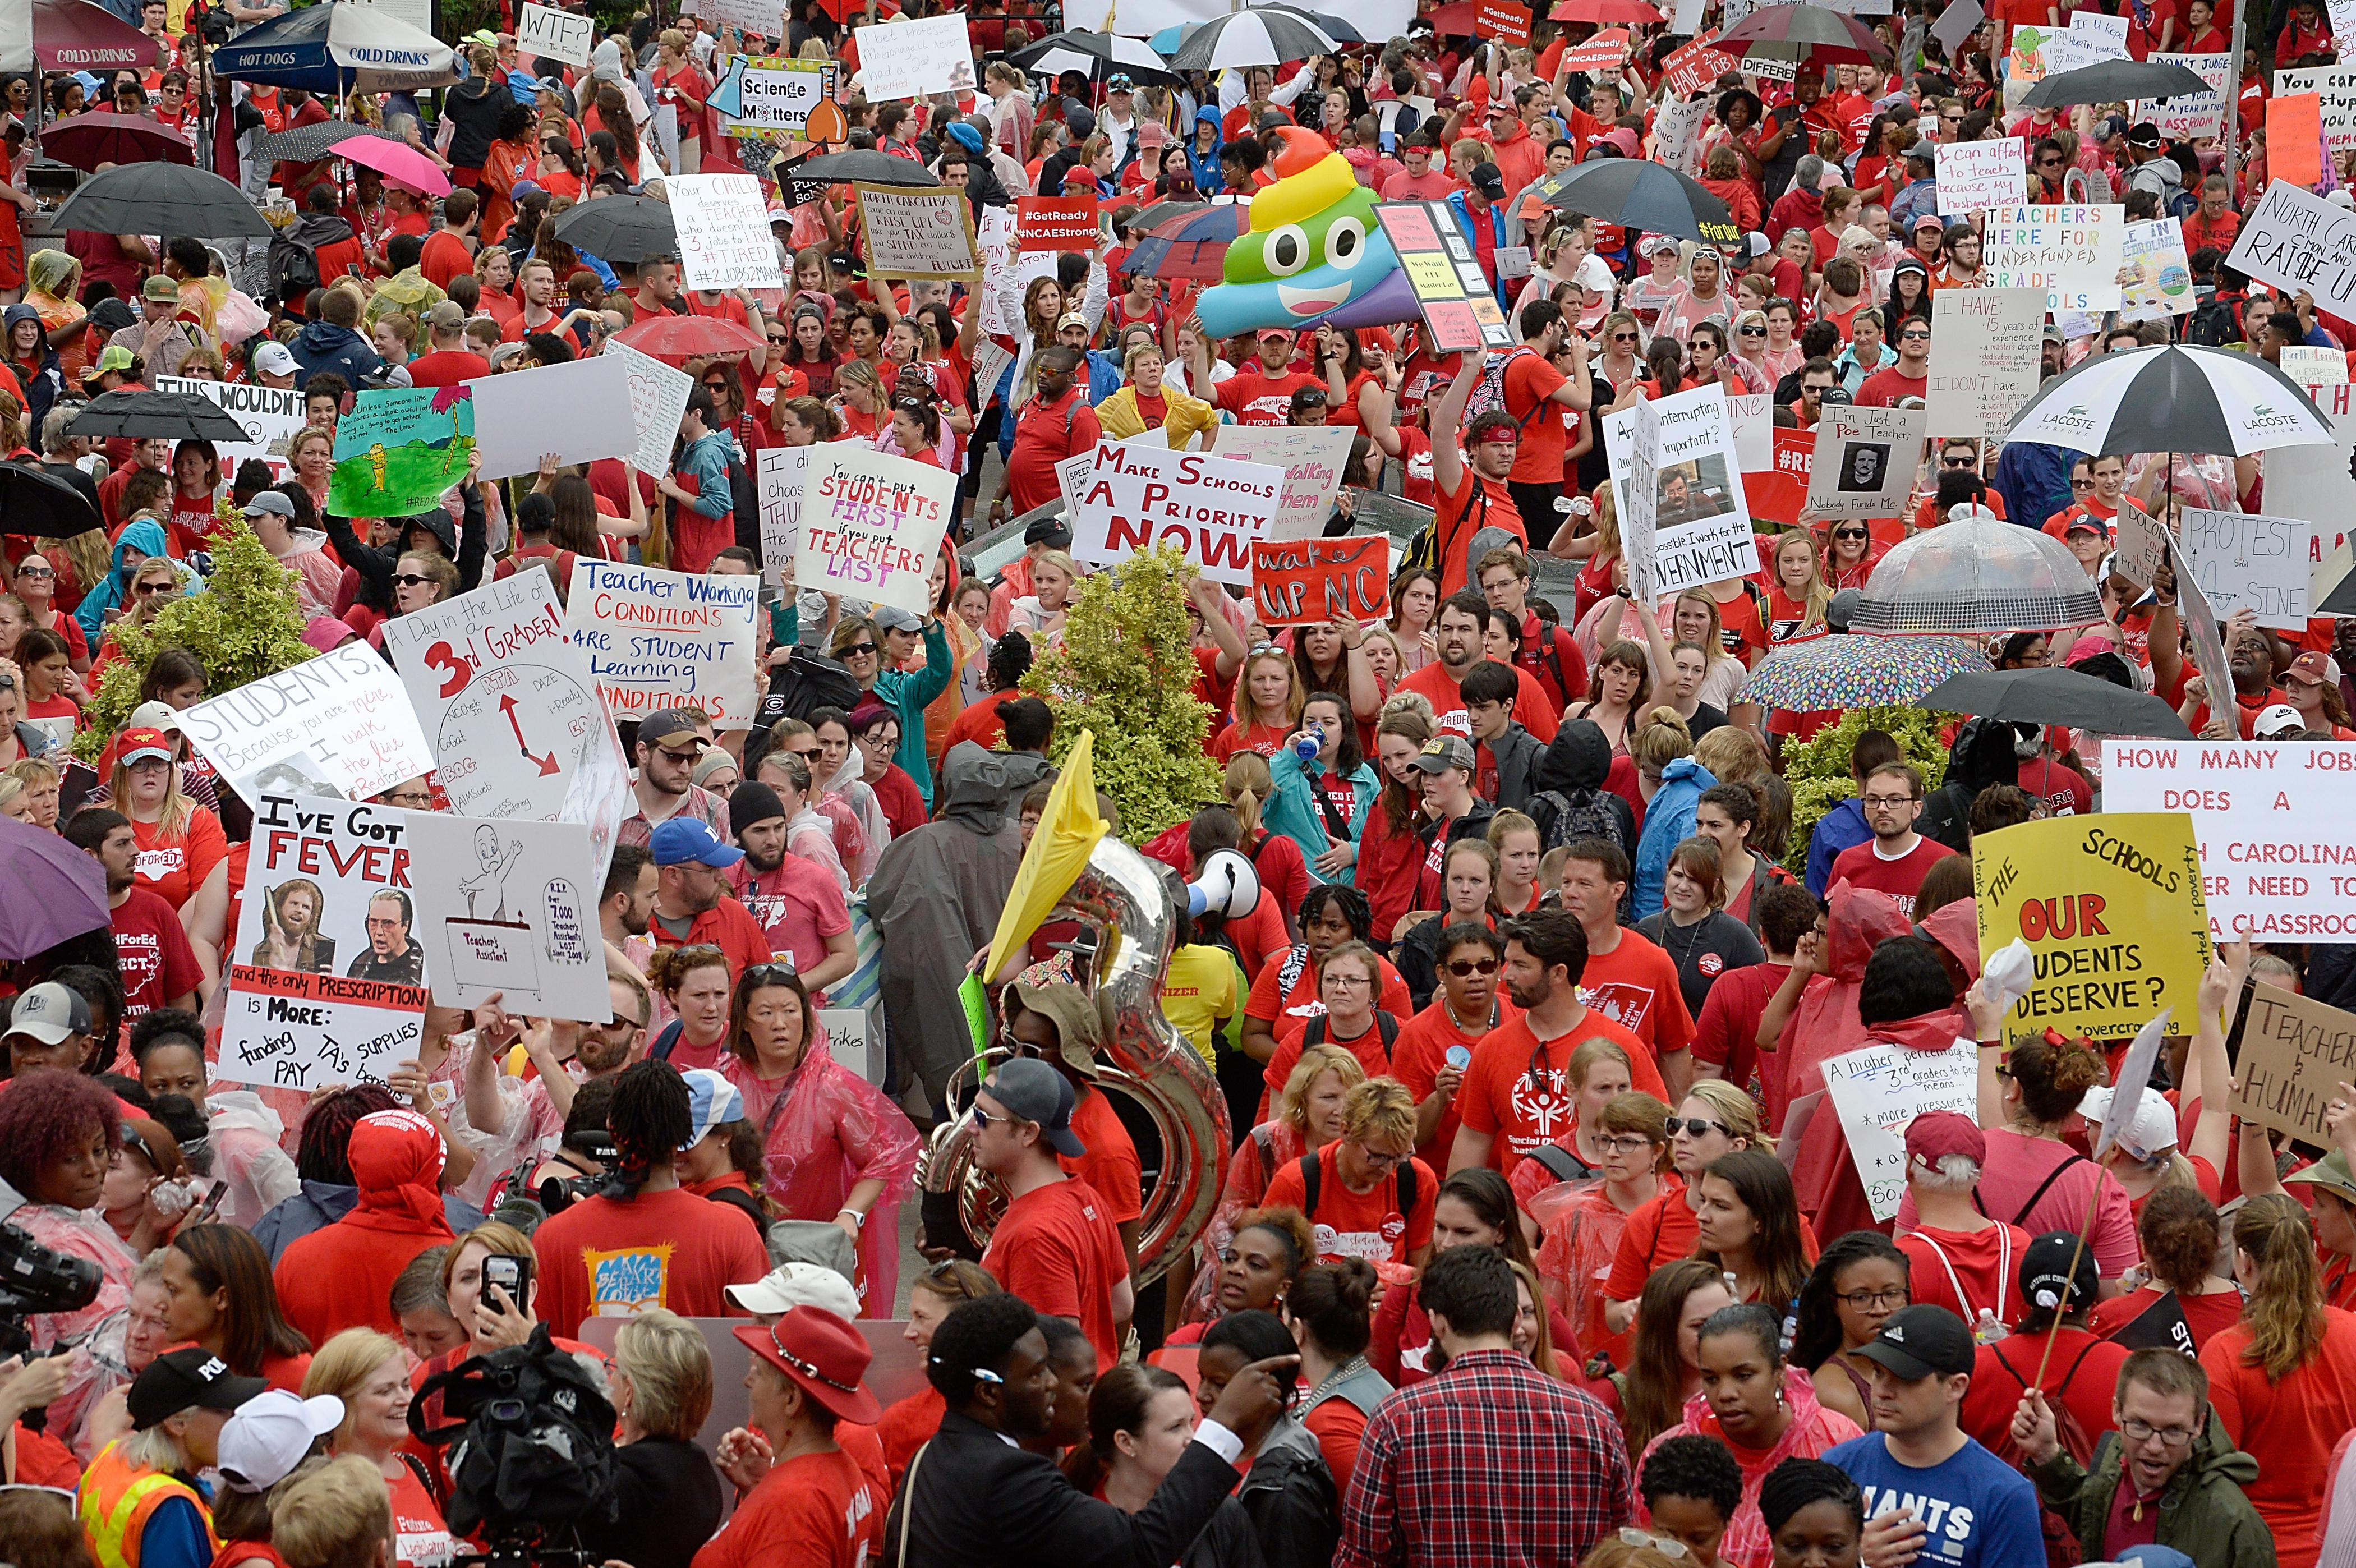 Crowds of teachers and their supporters, many wearing red, at the Capitol.